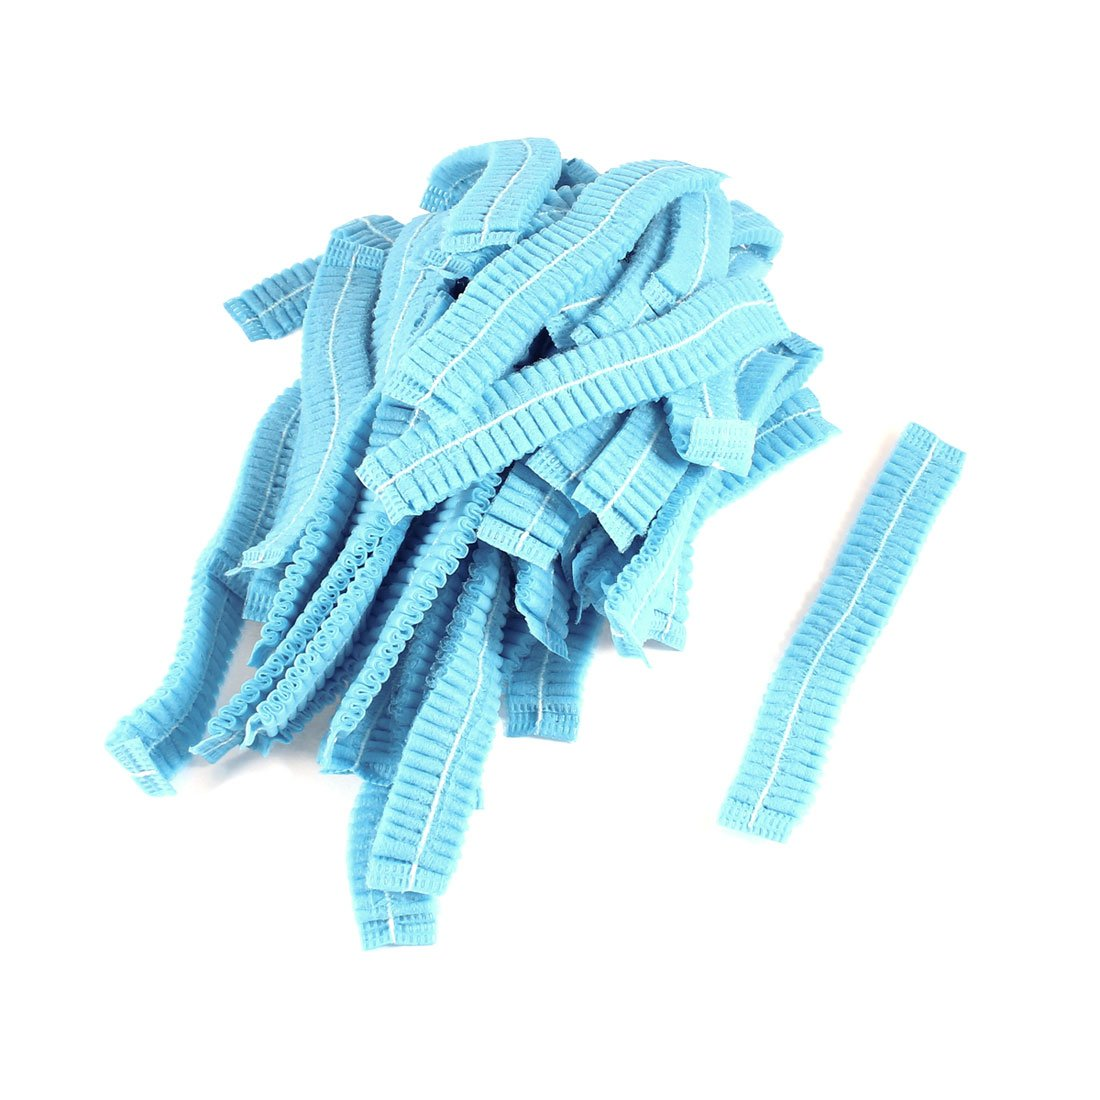 uxcell Stretchy Head Band Disposable Bathing Shower Cap 50 Pcs Blue US-SA-AJD-52558